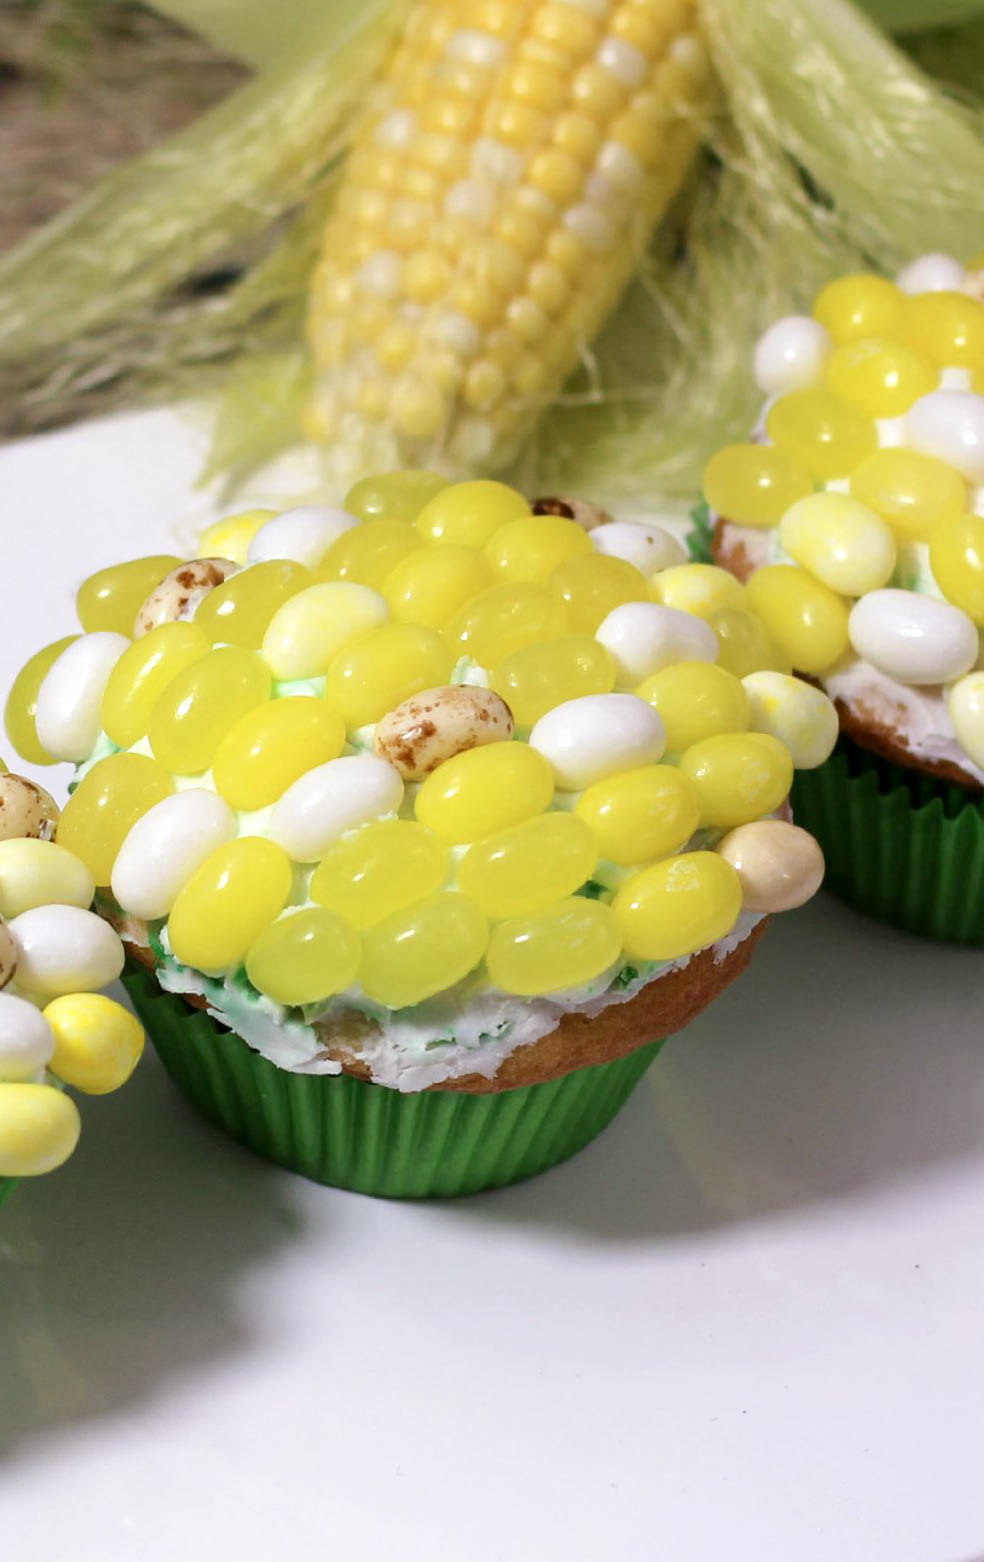 Feeling WICKED? Give your runners a taste of sweet freedom with these deceptively delicious Maze Runner Cupcakes that look like corn on the cob!